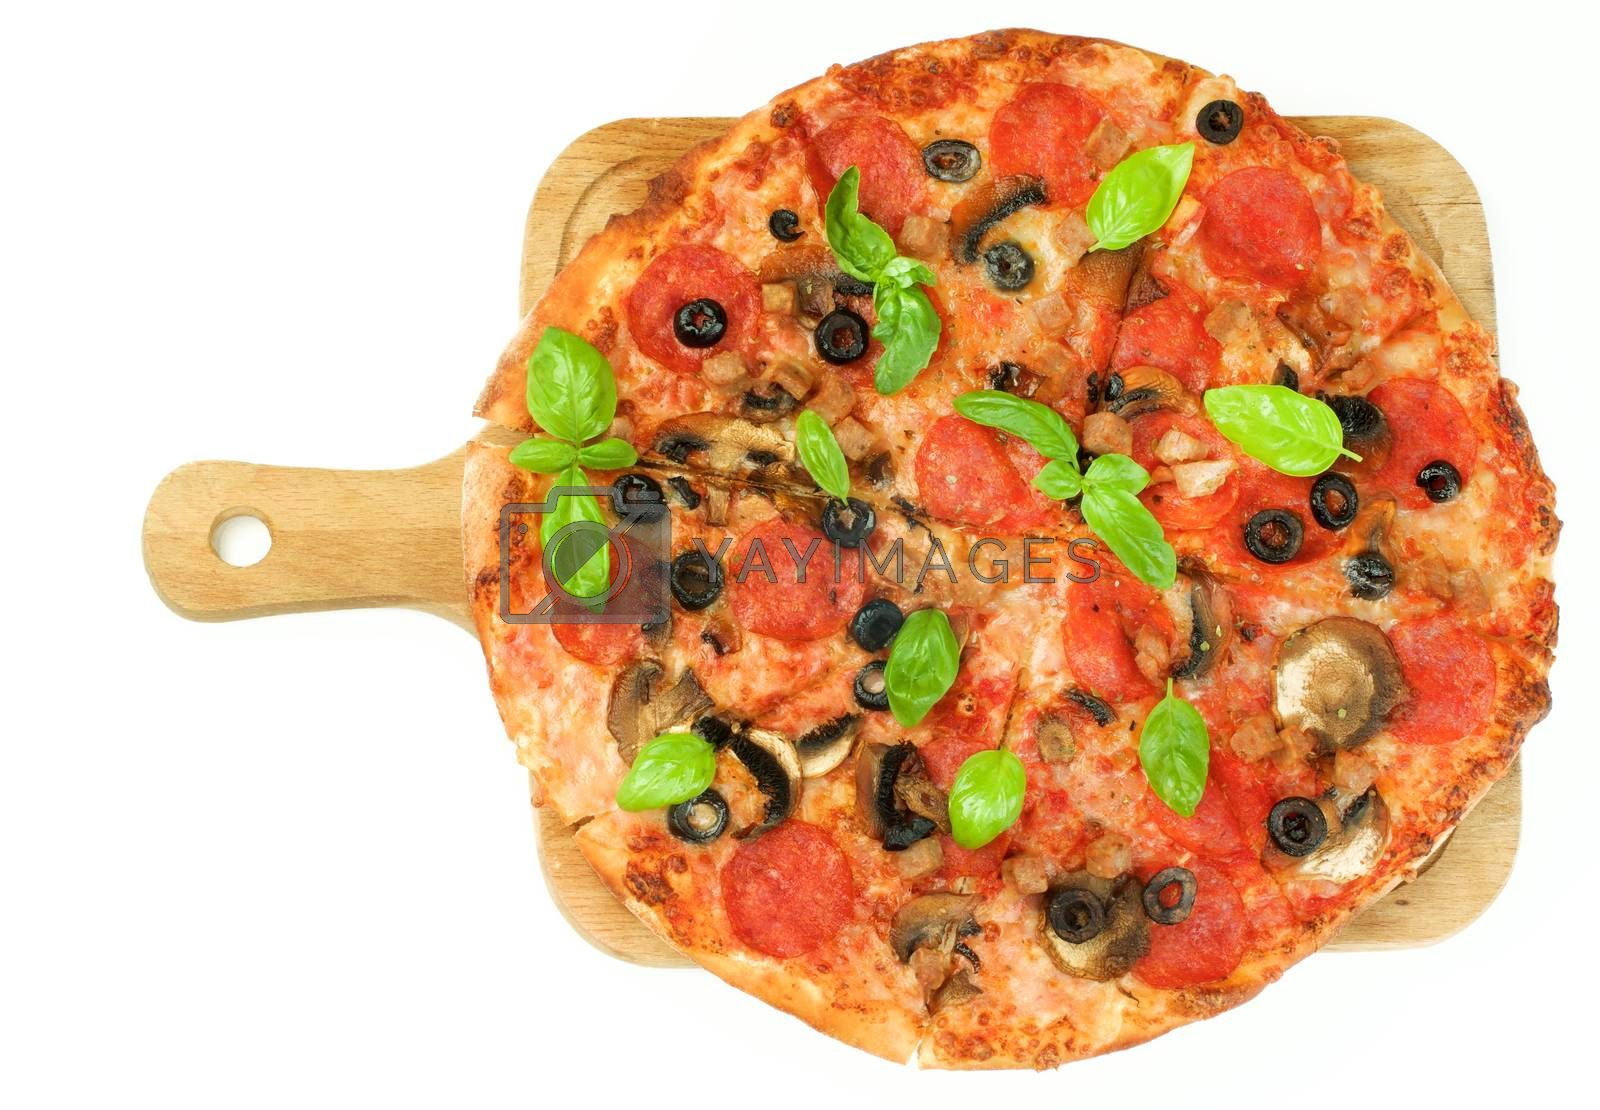 Homemade Pepperoni Pizza with Mushrooms, Black Olives, Ham and Basil on Wooden Cutting Board on White background. Top View